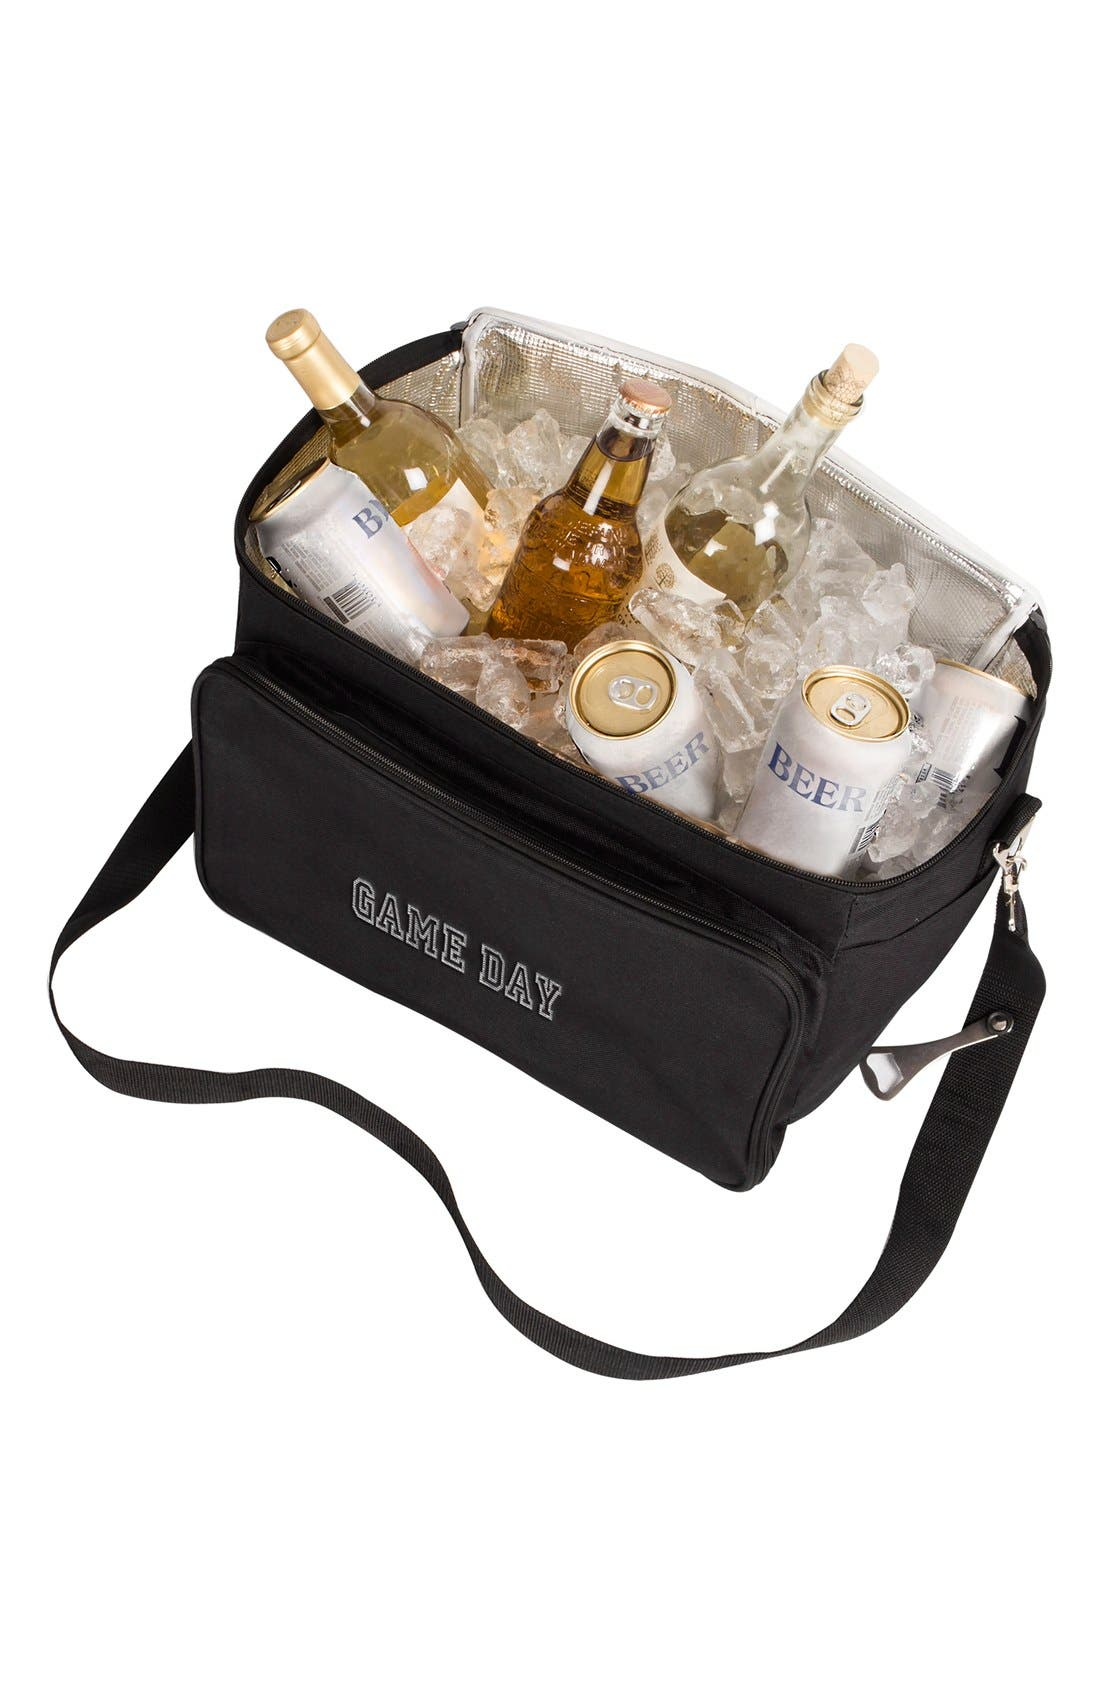 'Game Day' Cooler & BBQ Tool Set,                             Alternate thumbnail 2, color,                             Black